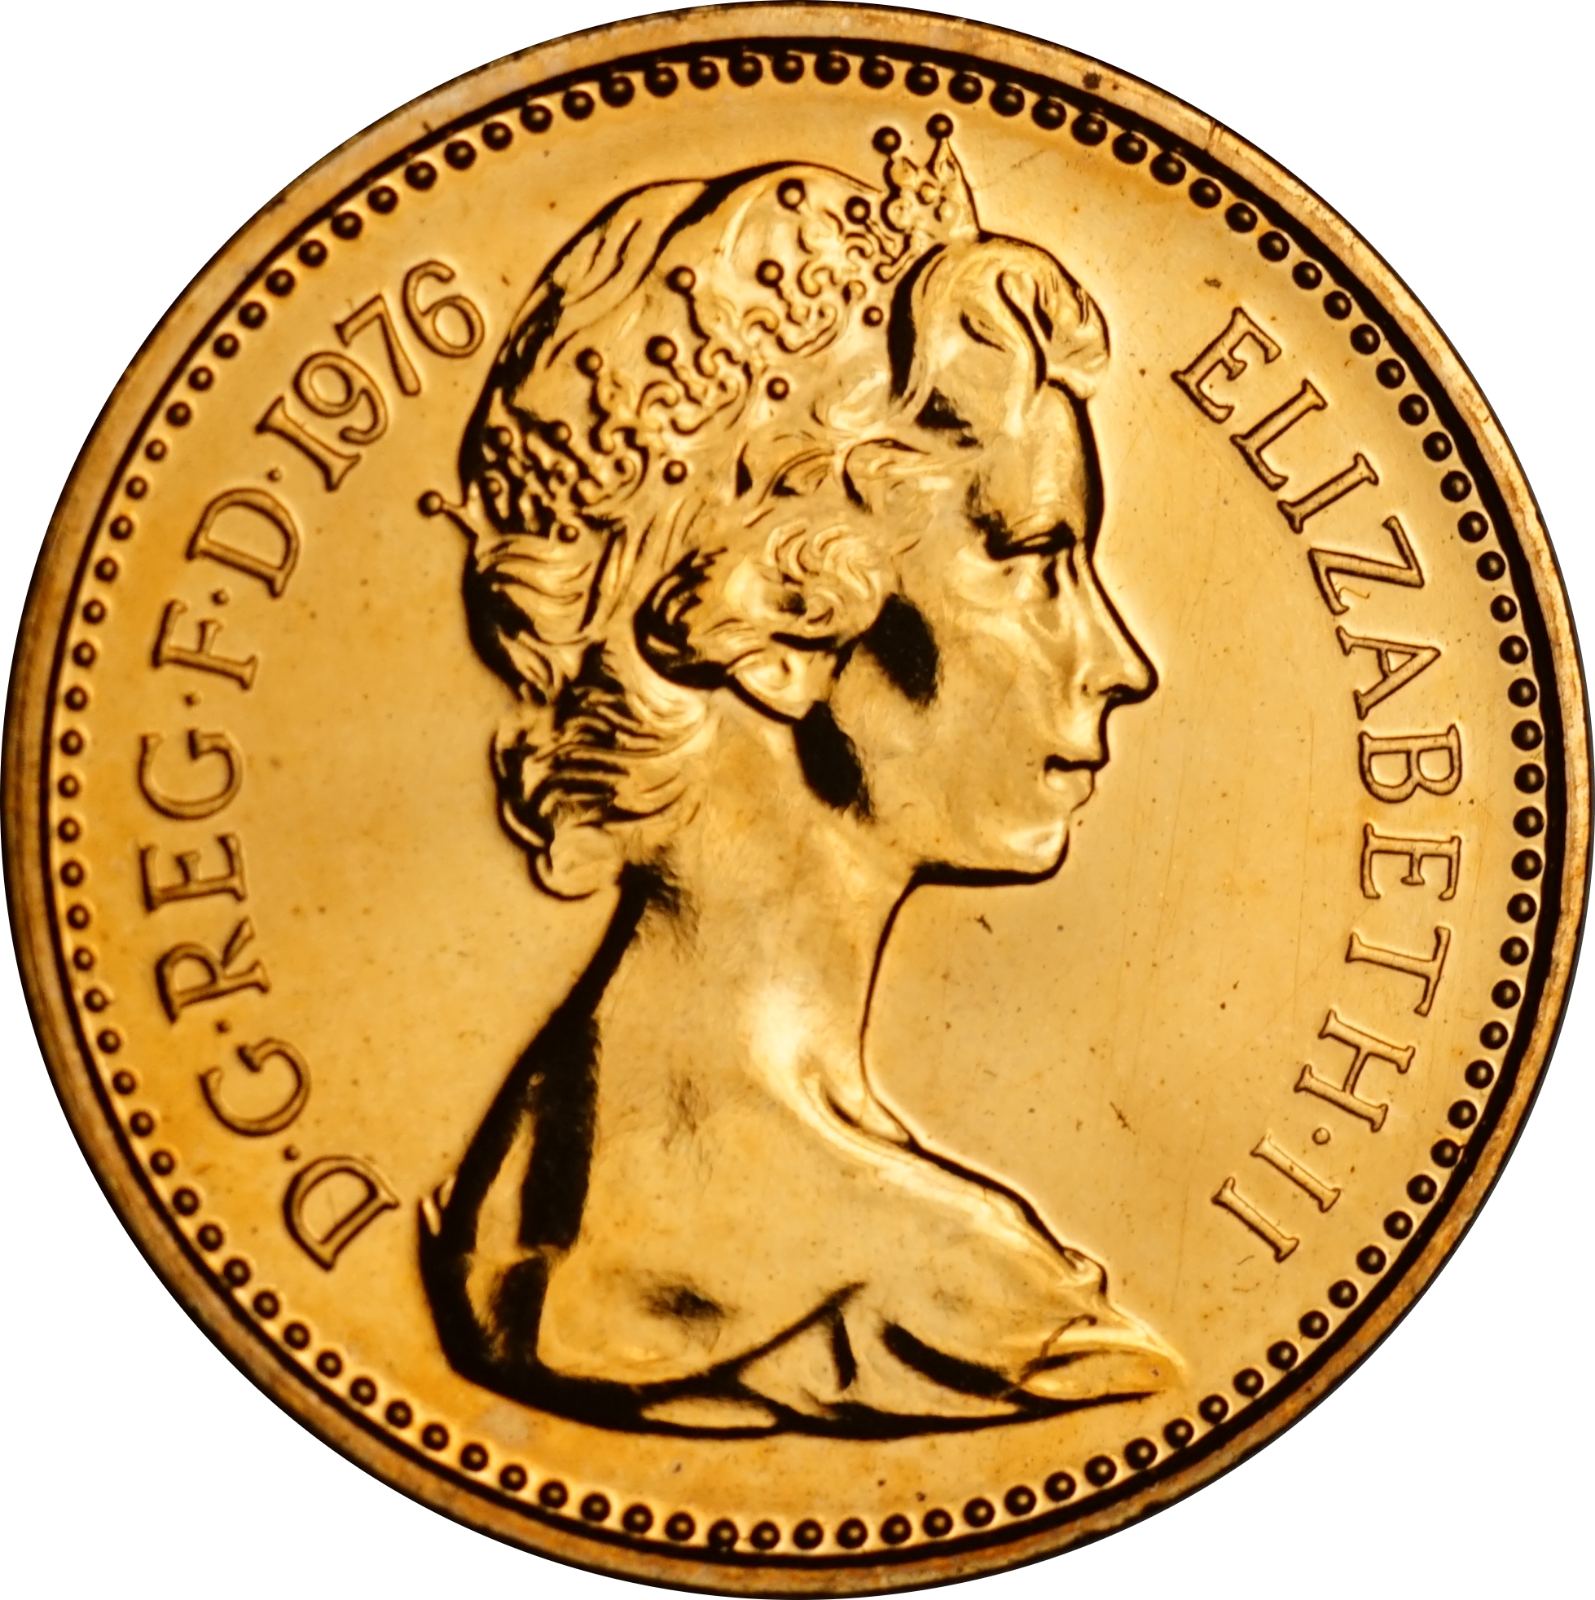 1971 - 1984 UK Decimal Halfpenny Proof Coins, pick the coins you want. 2